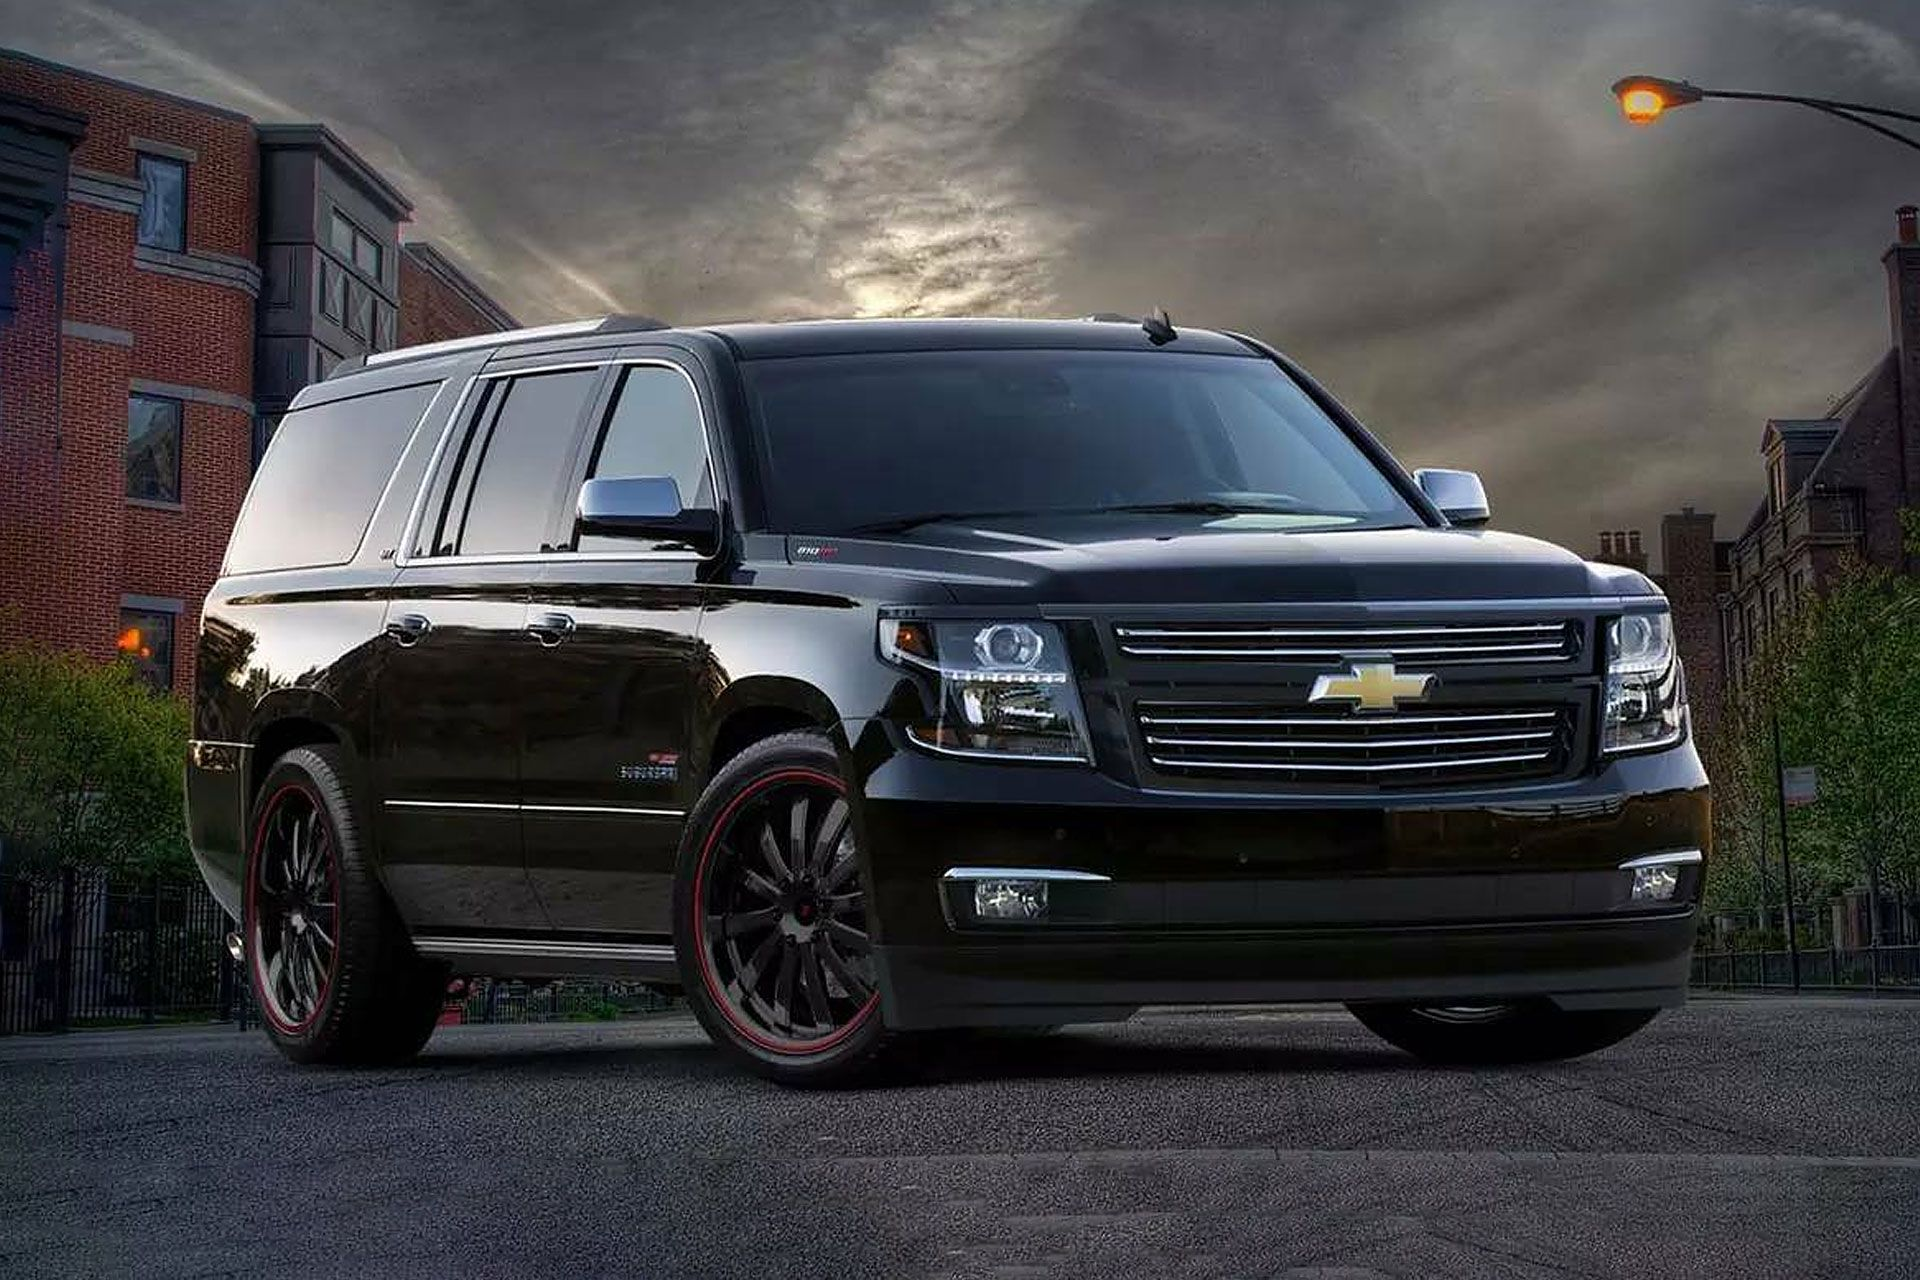 2019 Sve Chevrolet H O Supercharged Suvs With Images Chevy